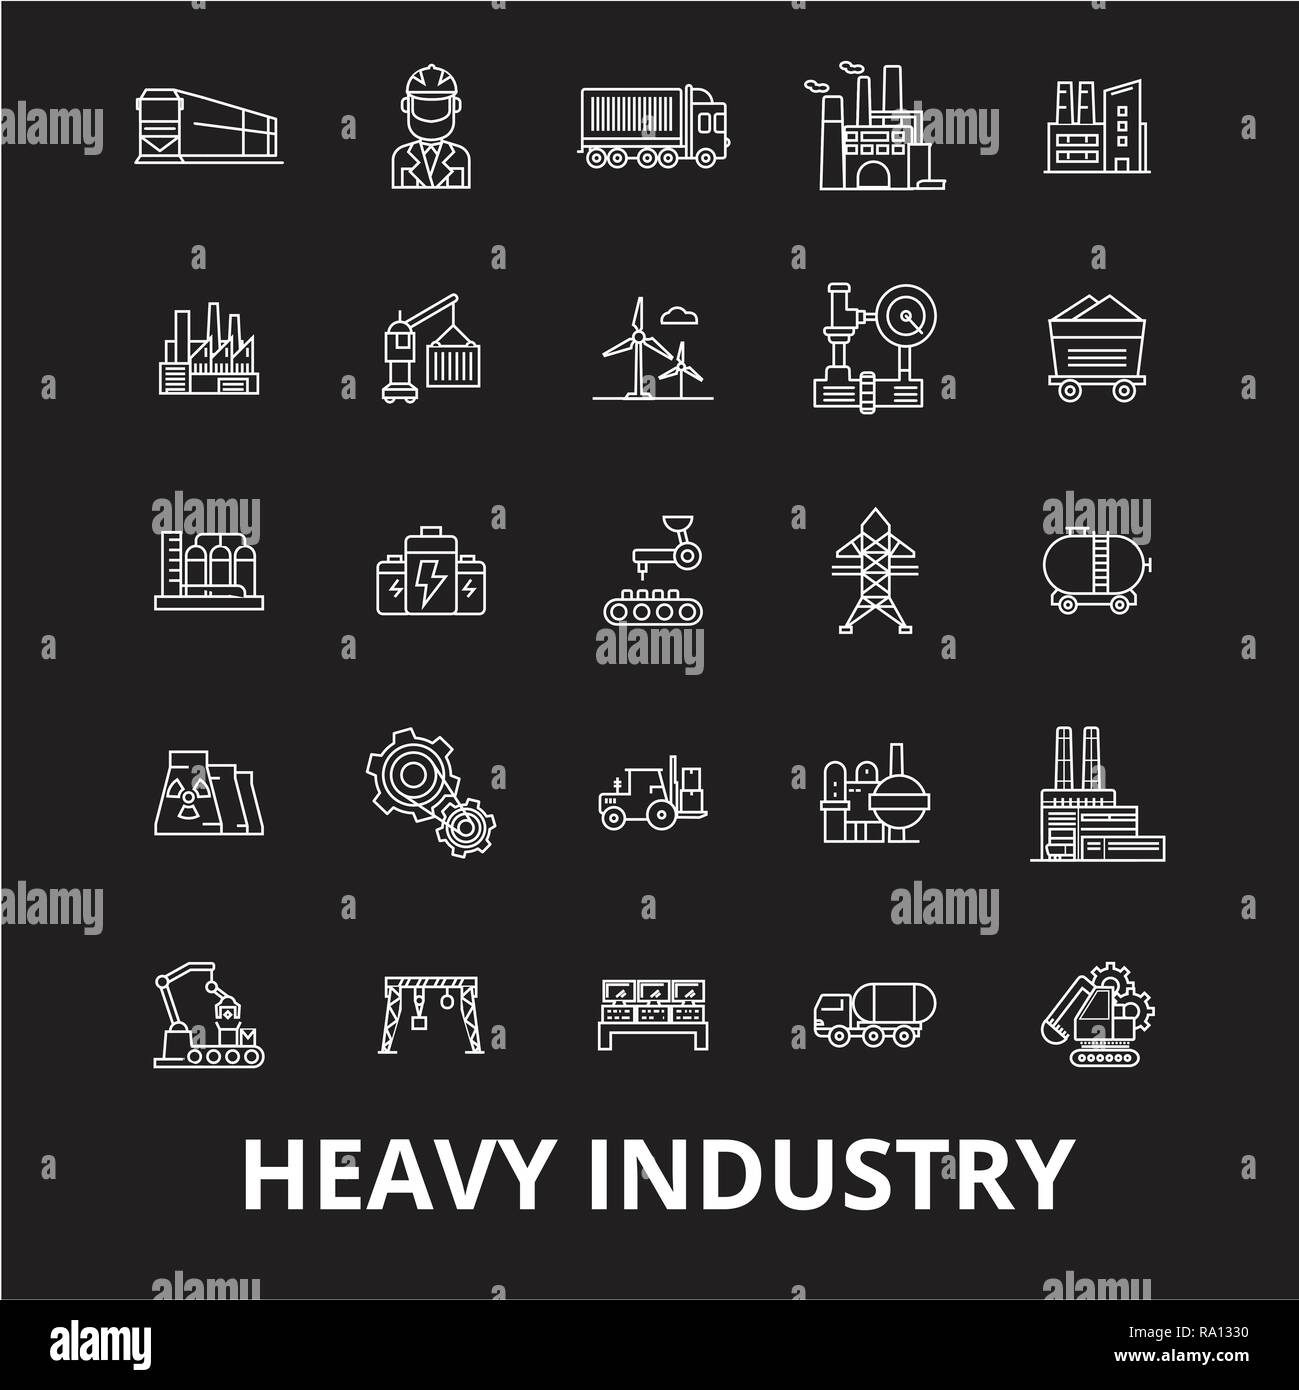 Heavy industry editable line icons vector set on black background. Heavy industry white outline illustrations, signs, symbols - Stock Vector